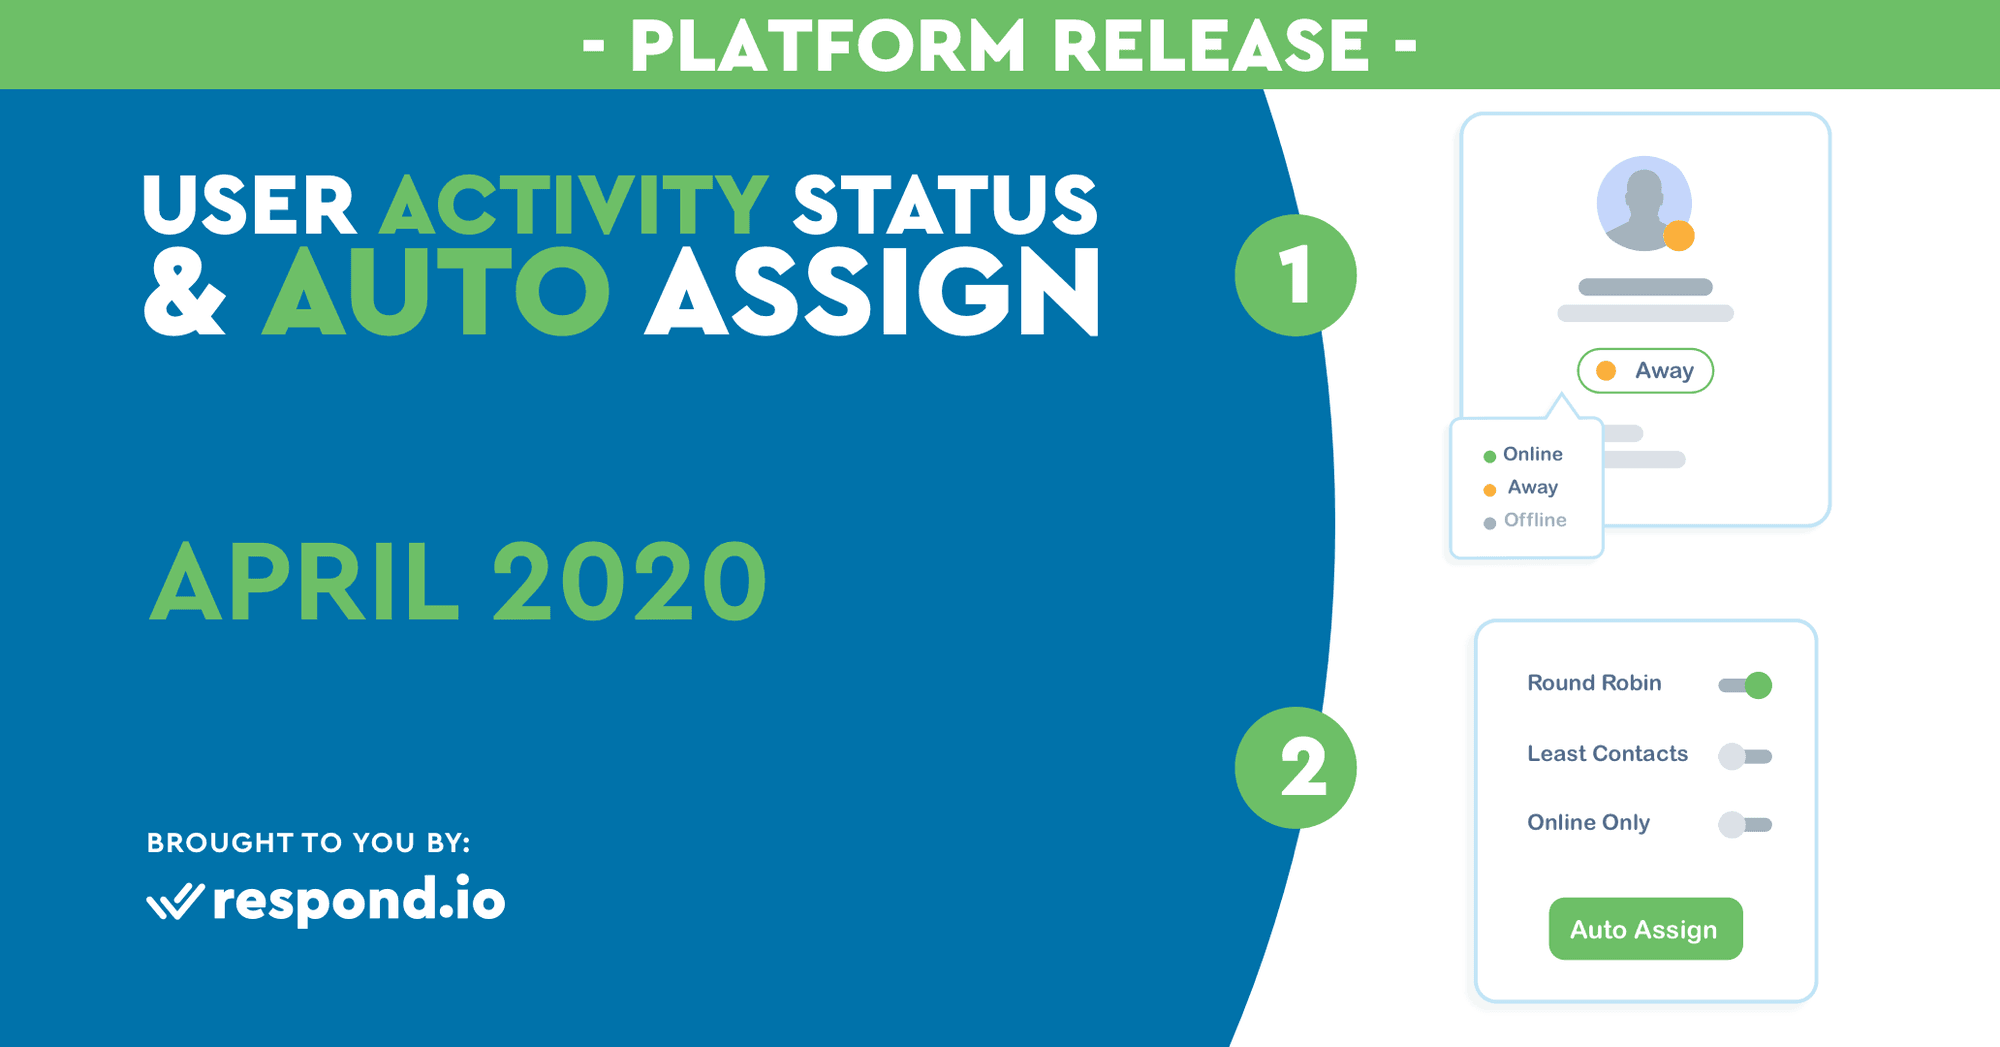 The April 2020 Release - User Activity Status & Auto Assignment